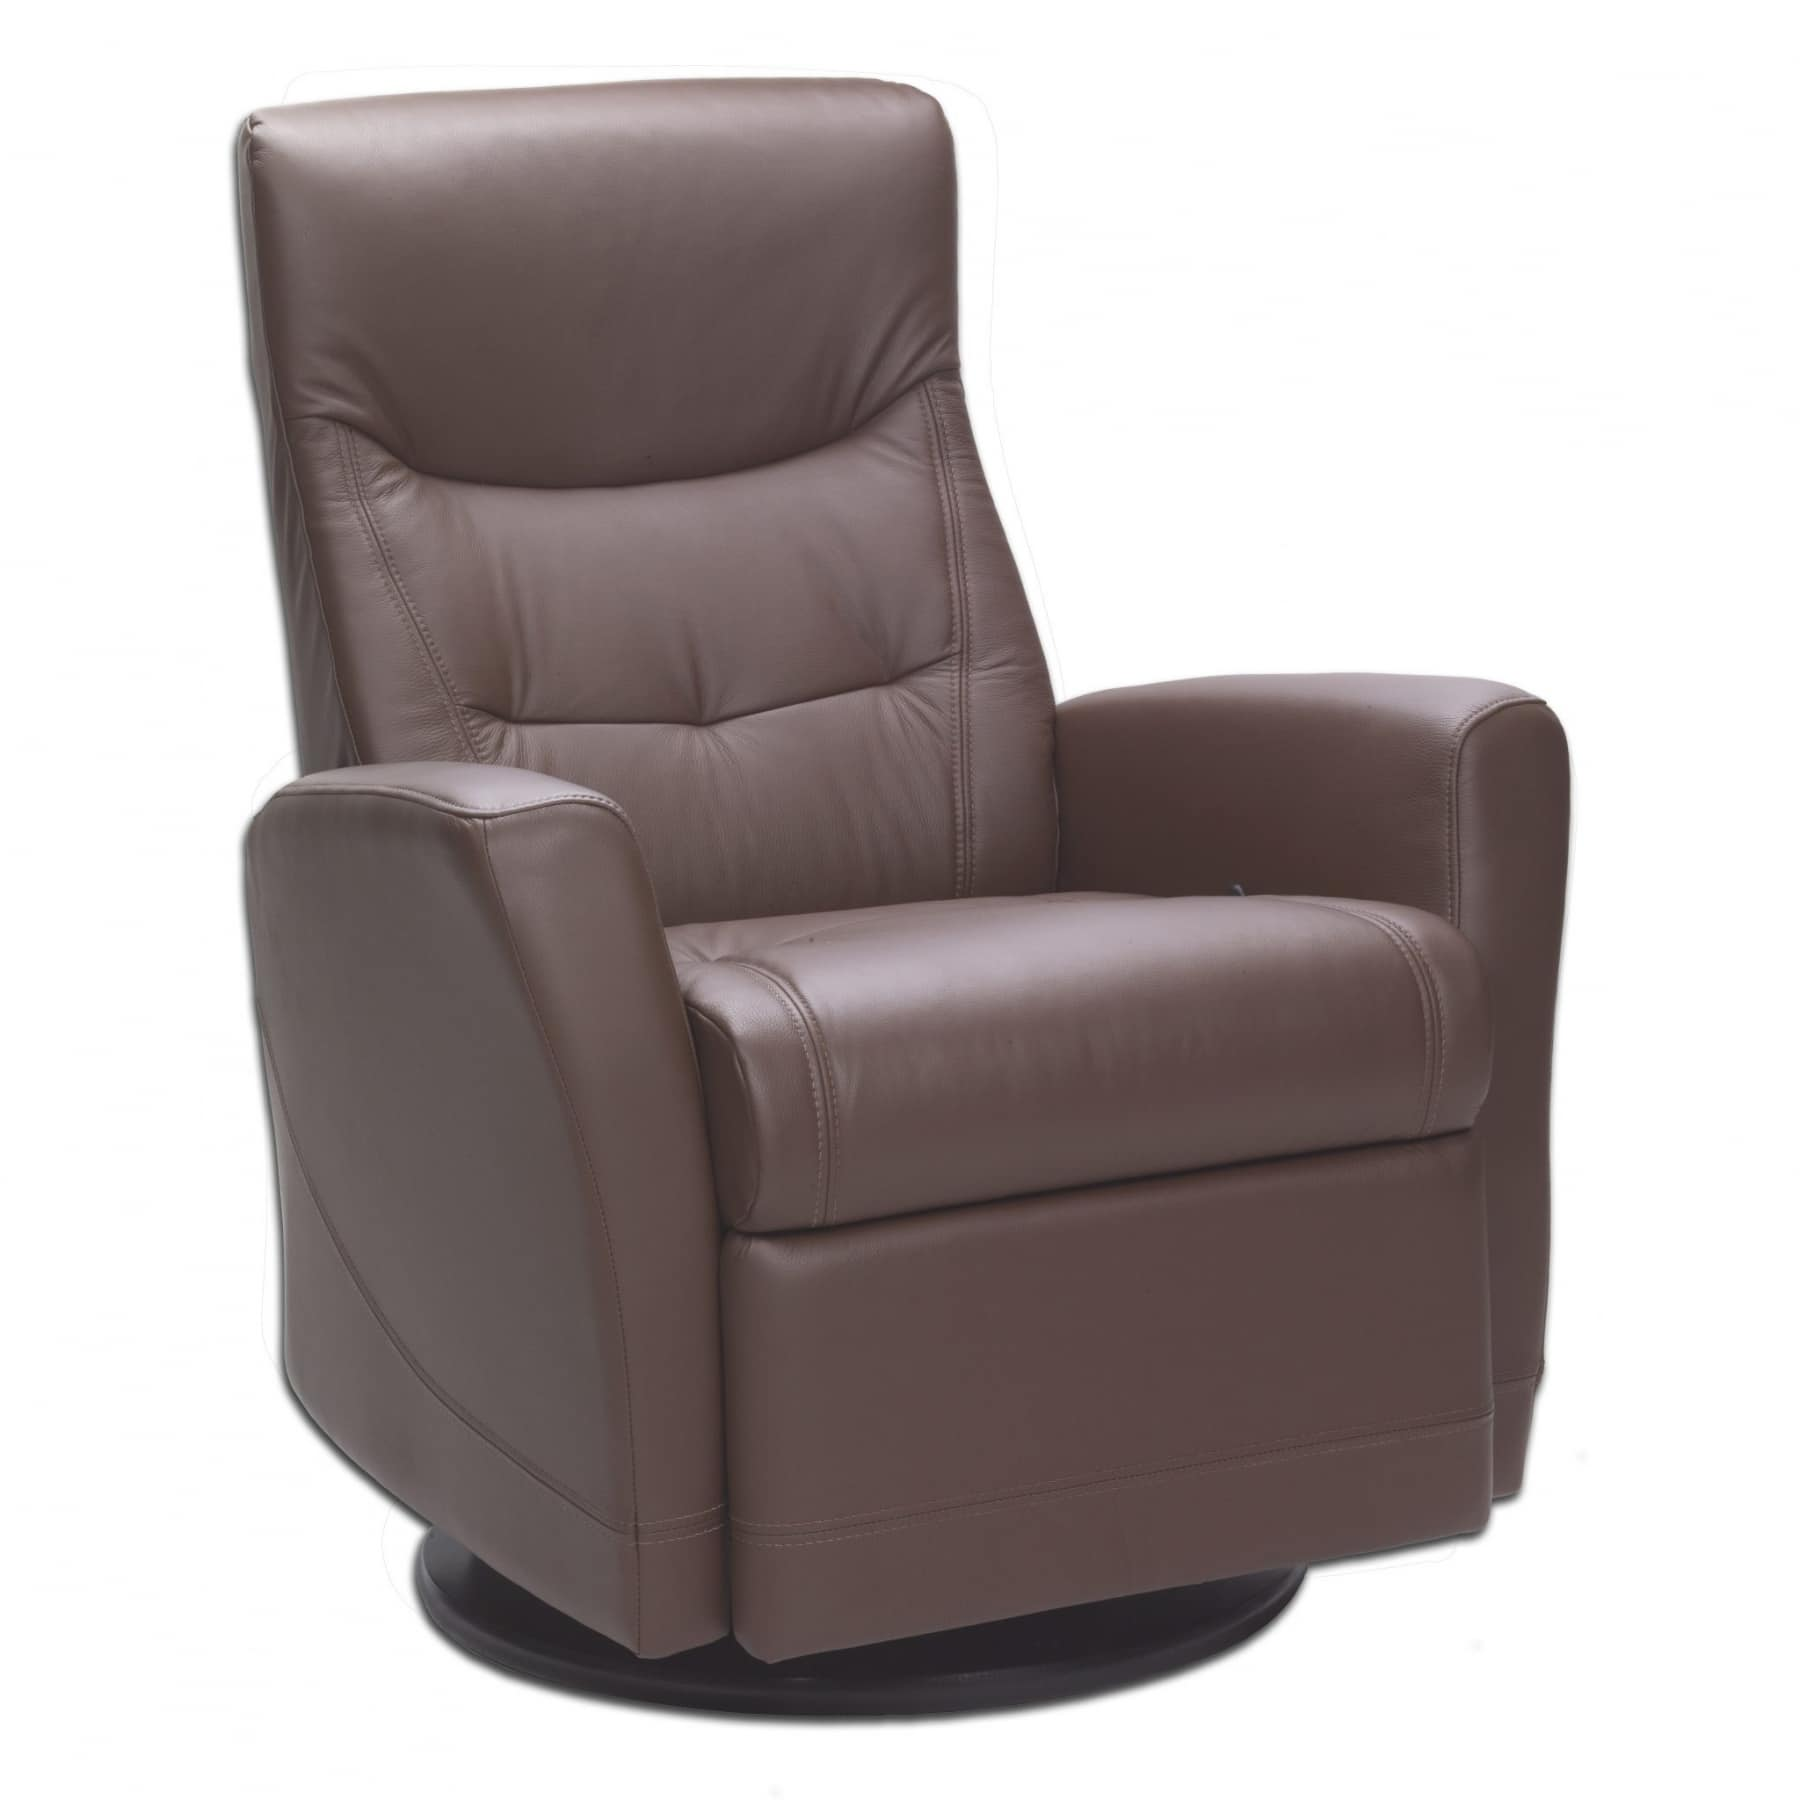 Fjords Oslo Swing Recliner Walnut